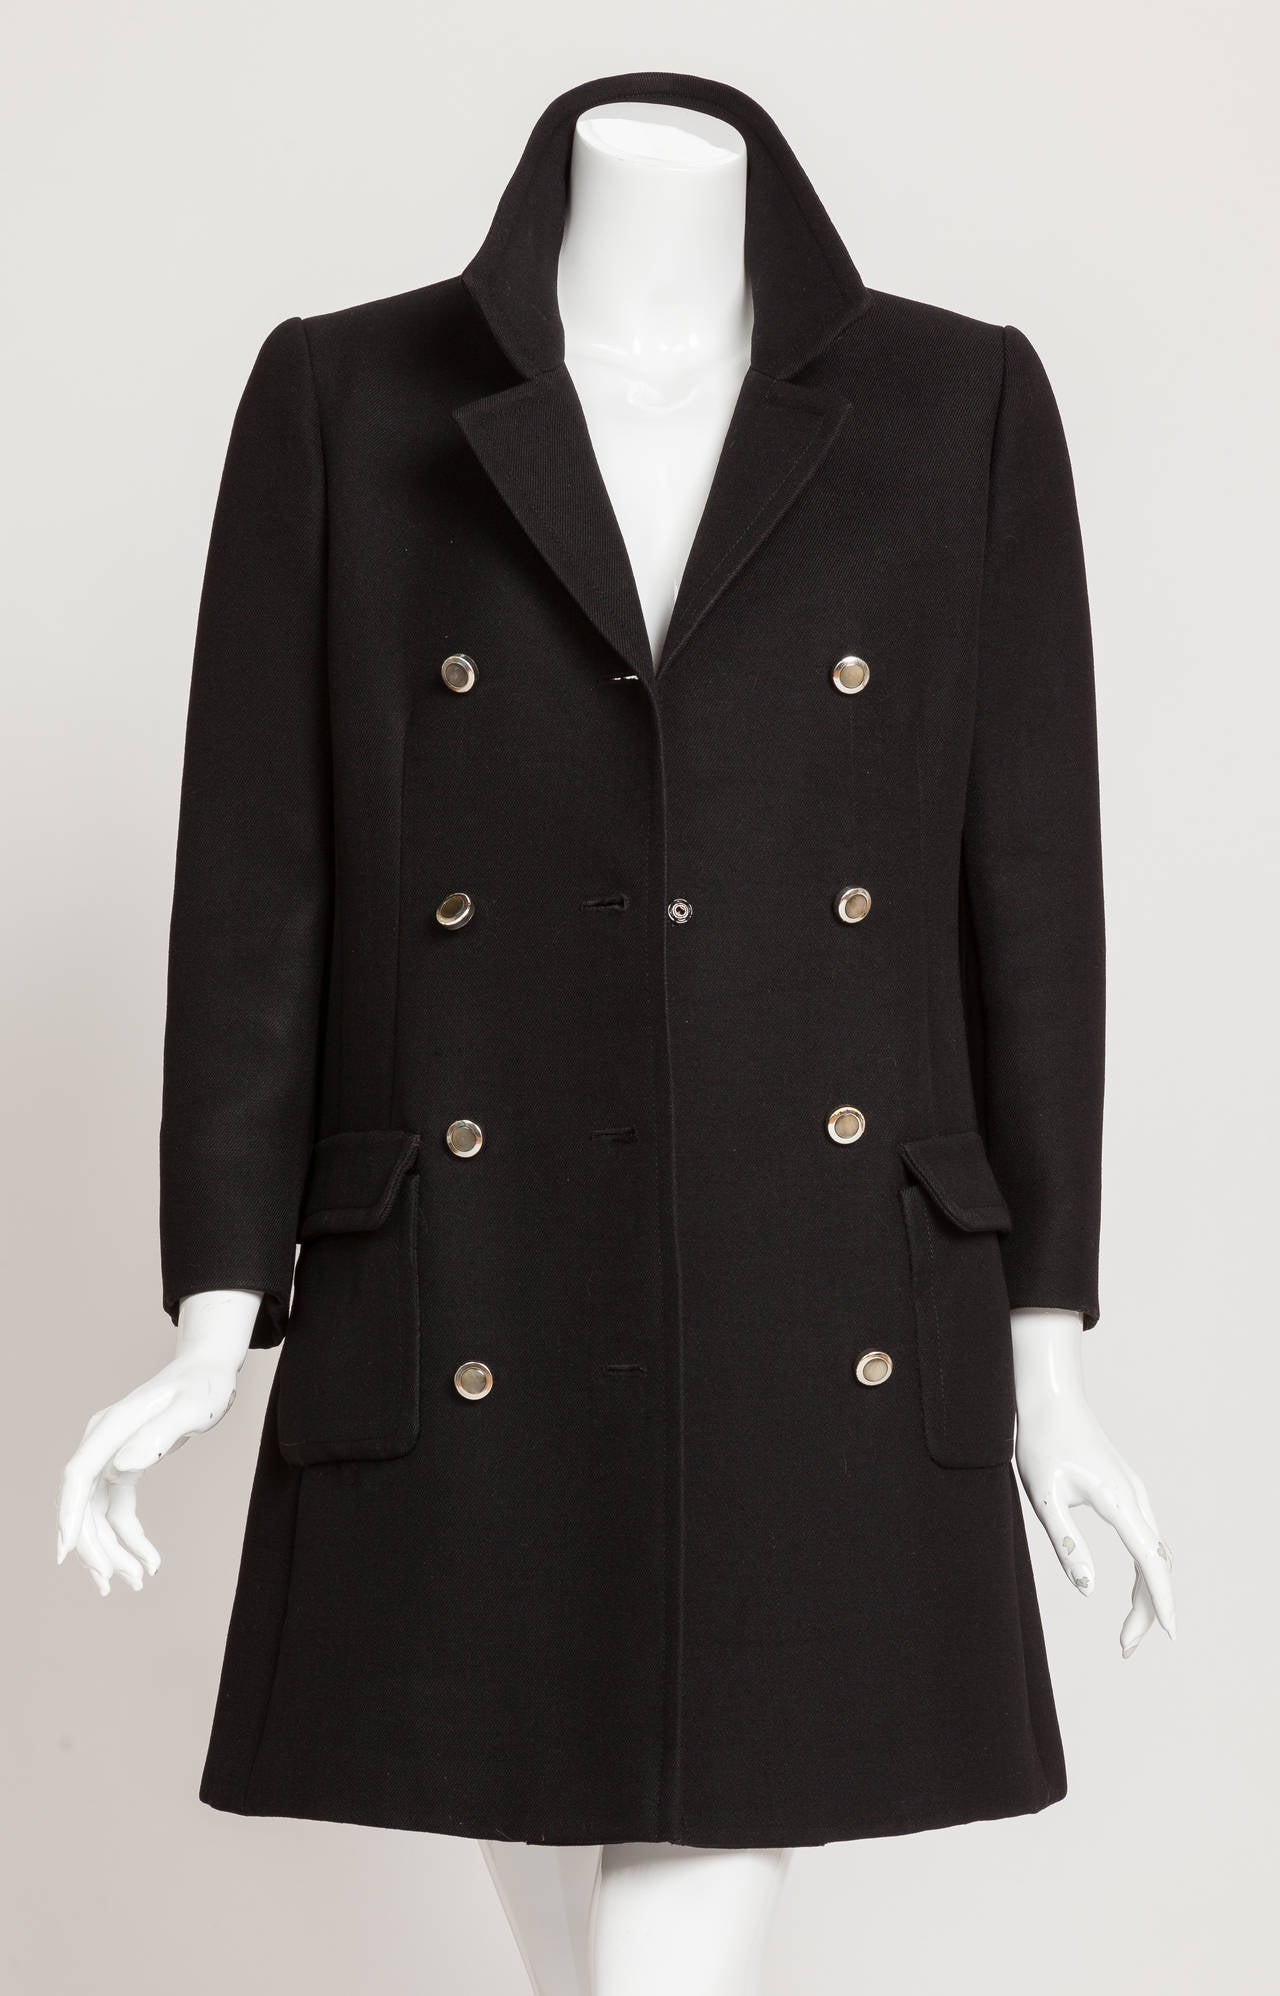 1960s Pierre Cardin Double-Breasted Black Wool Twill 3/4 Length Coat Jacket 2